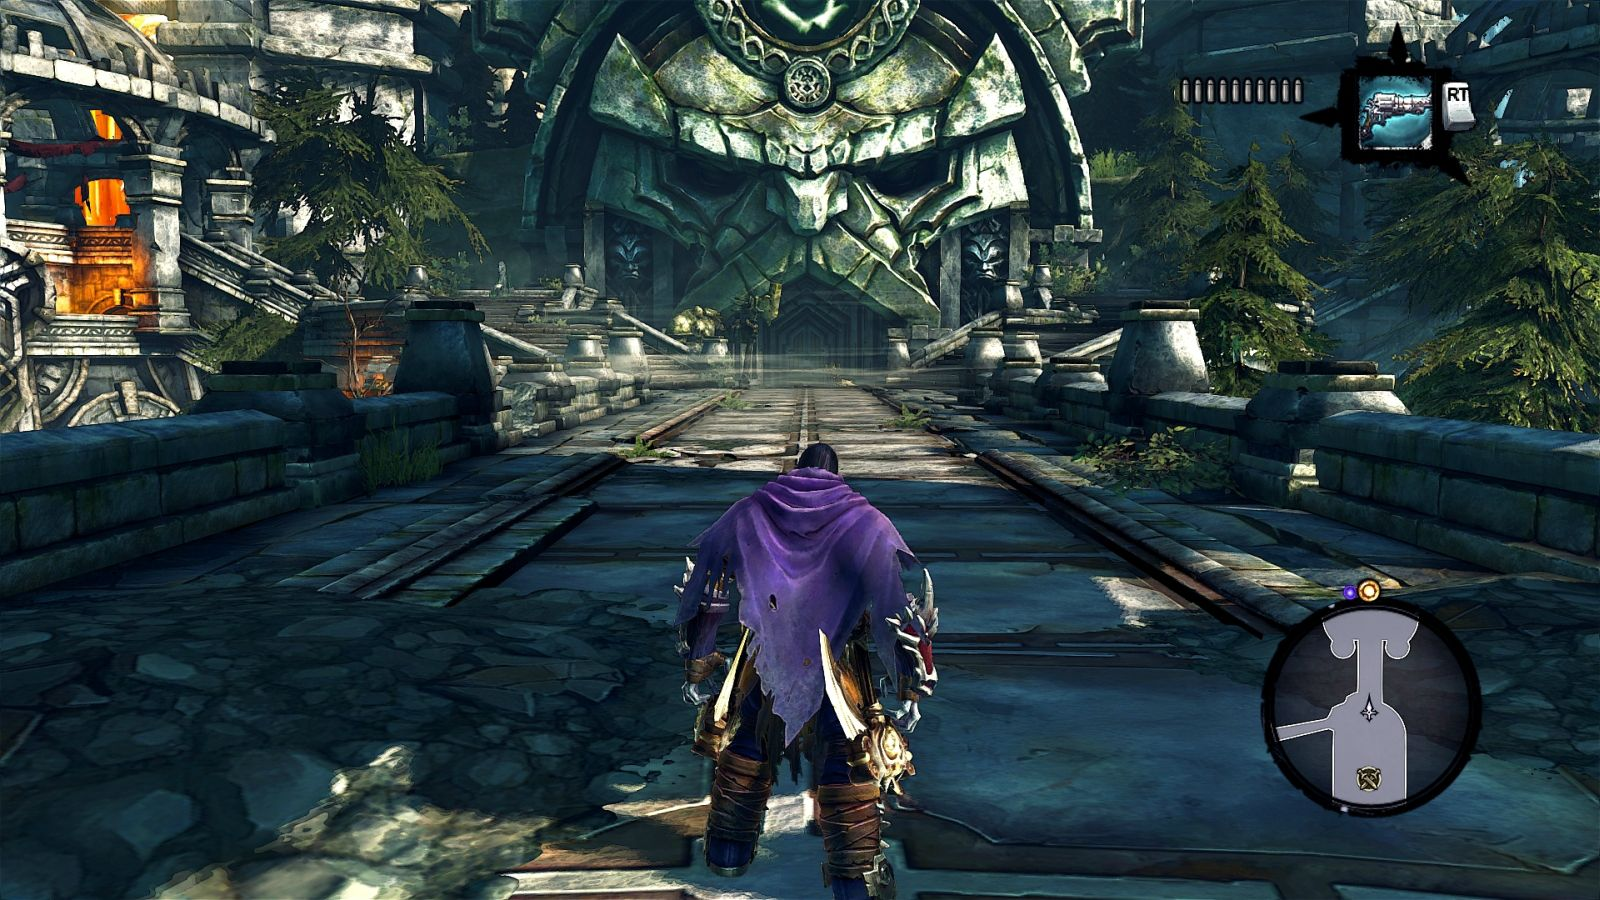 Darksiders-II-FXAA-tool-switched-on